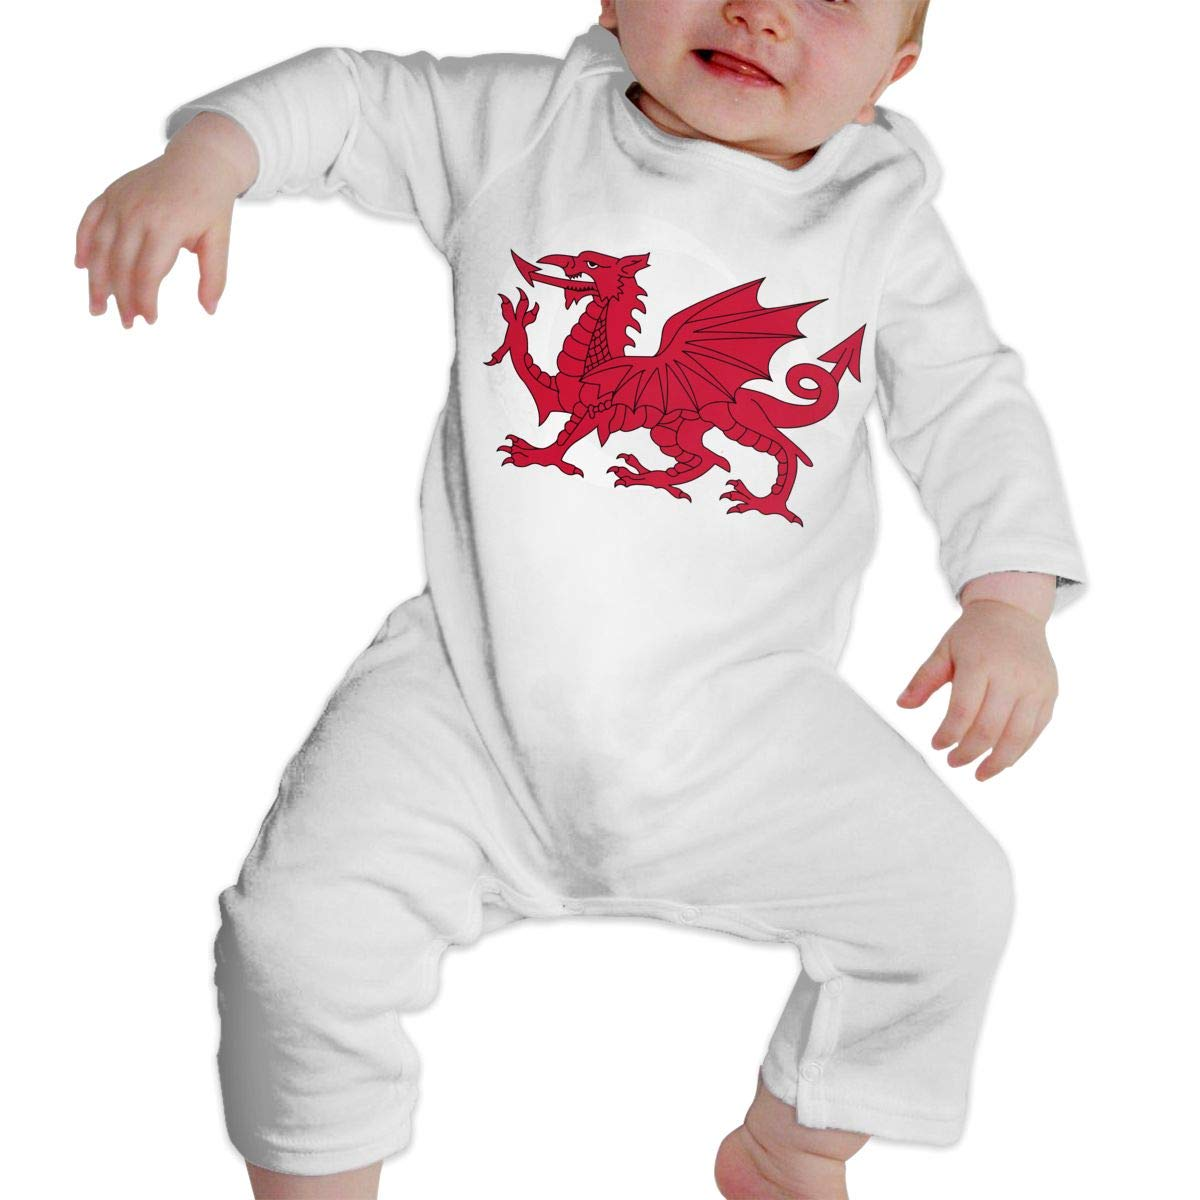 A1BY-5US Infant Baby Boys Girls Cotton Long Sleeve Wales Flag Climb Romper Funny Printed Romper Clothes